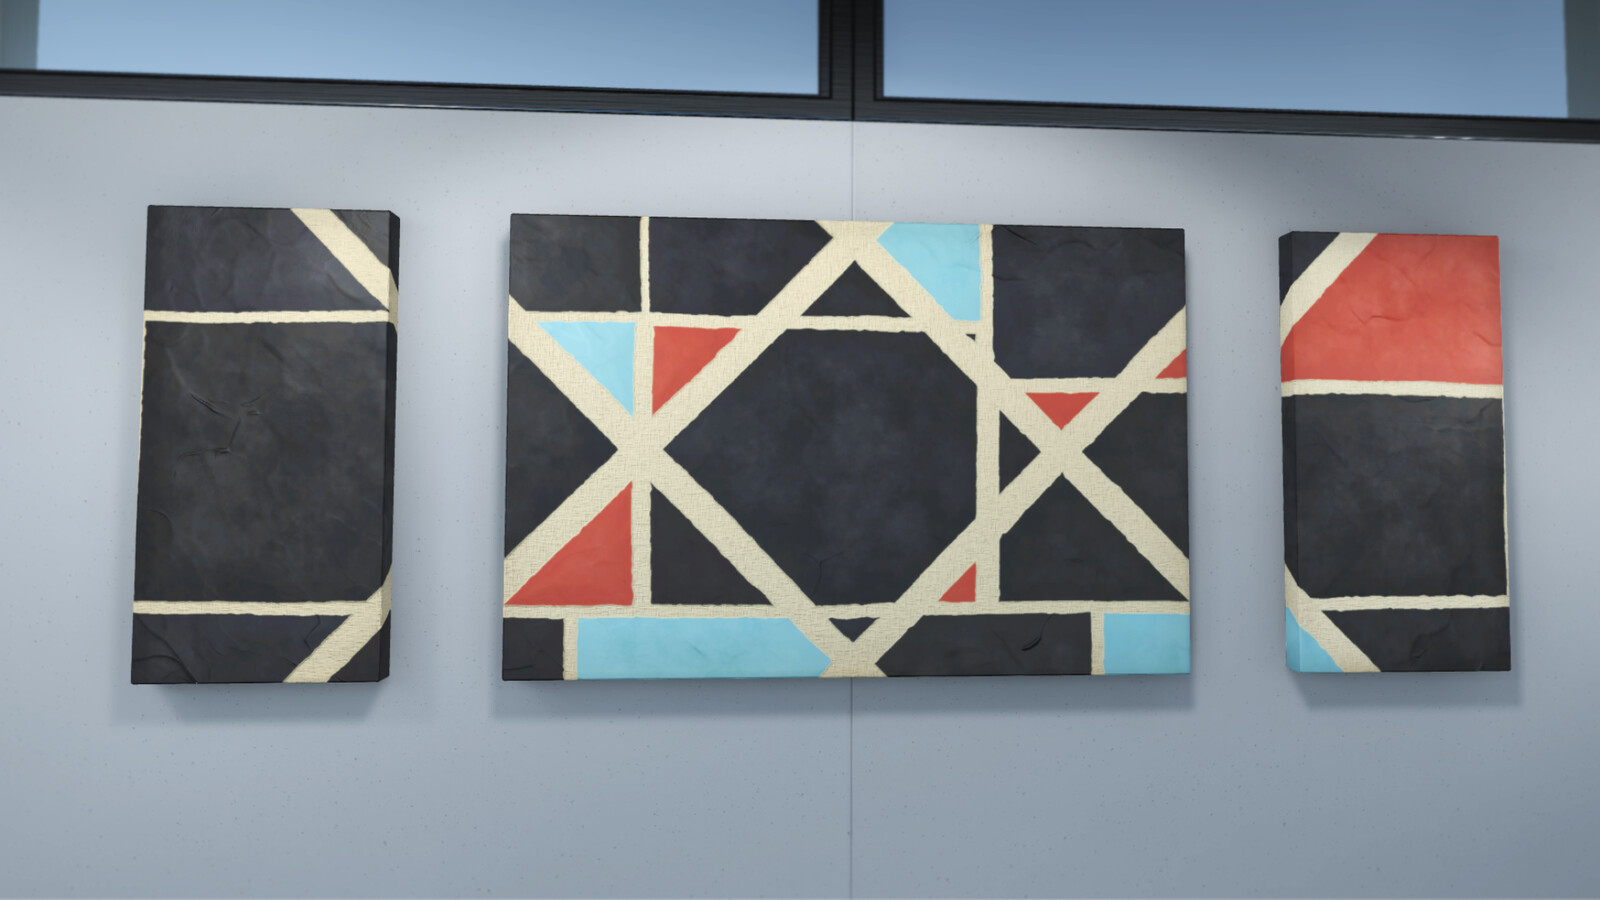 A couple close-ups of the paintings in Unity